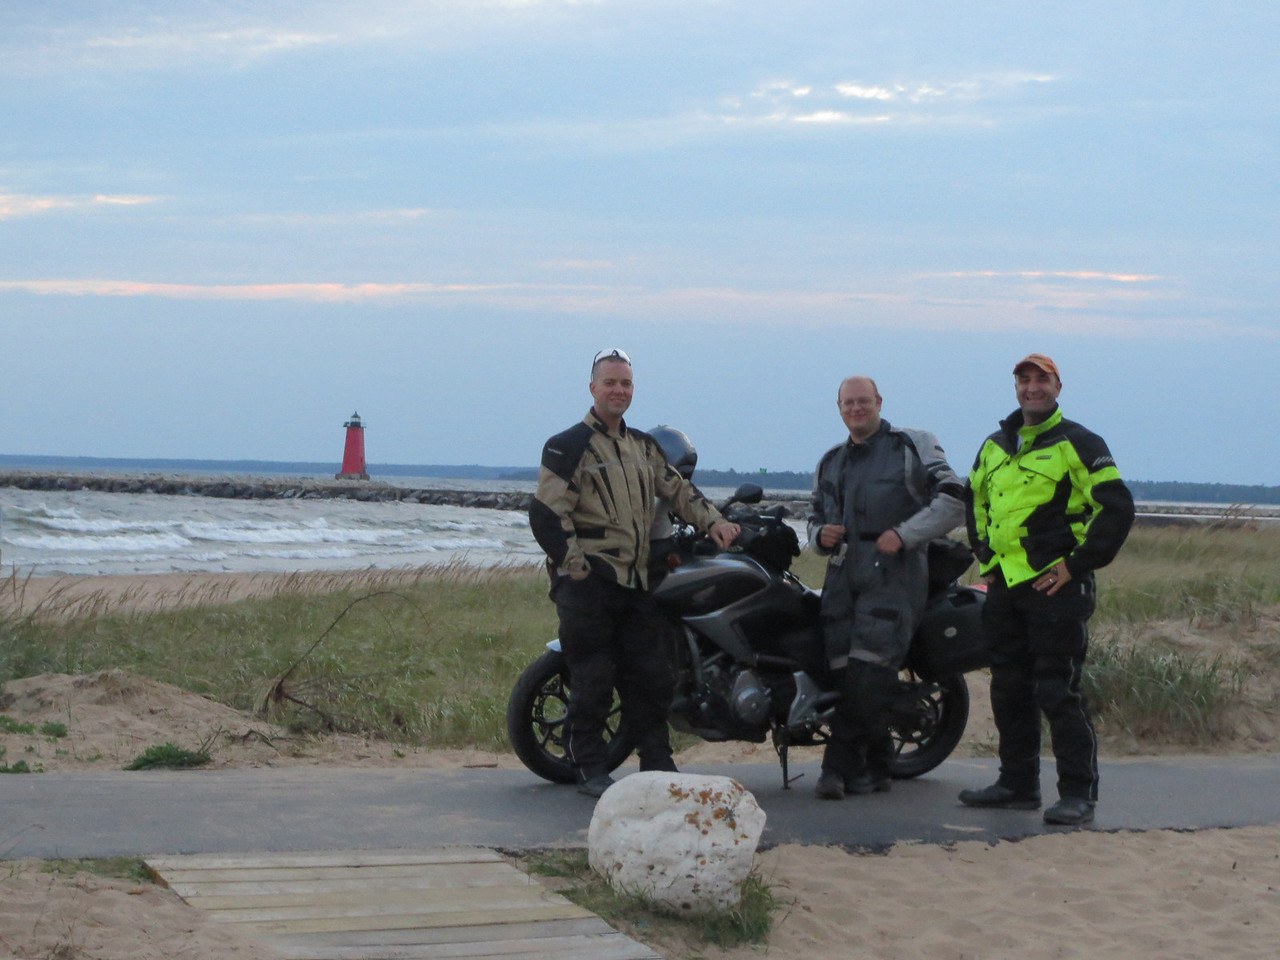 L-R, Brandon, Tim, and Me; on Lake Michigan